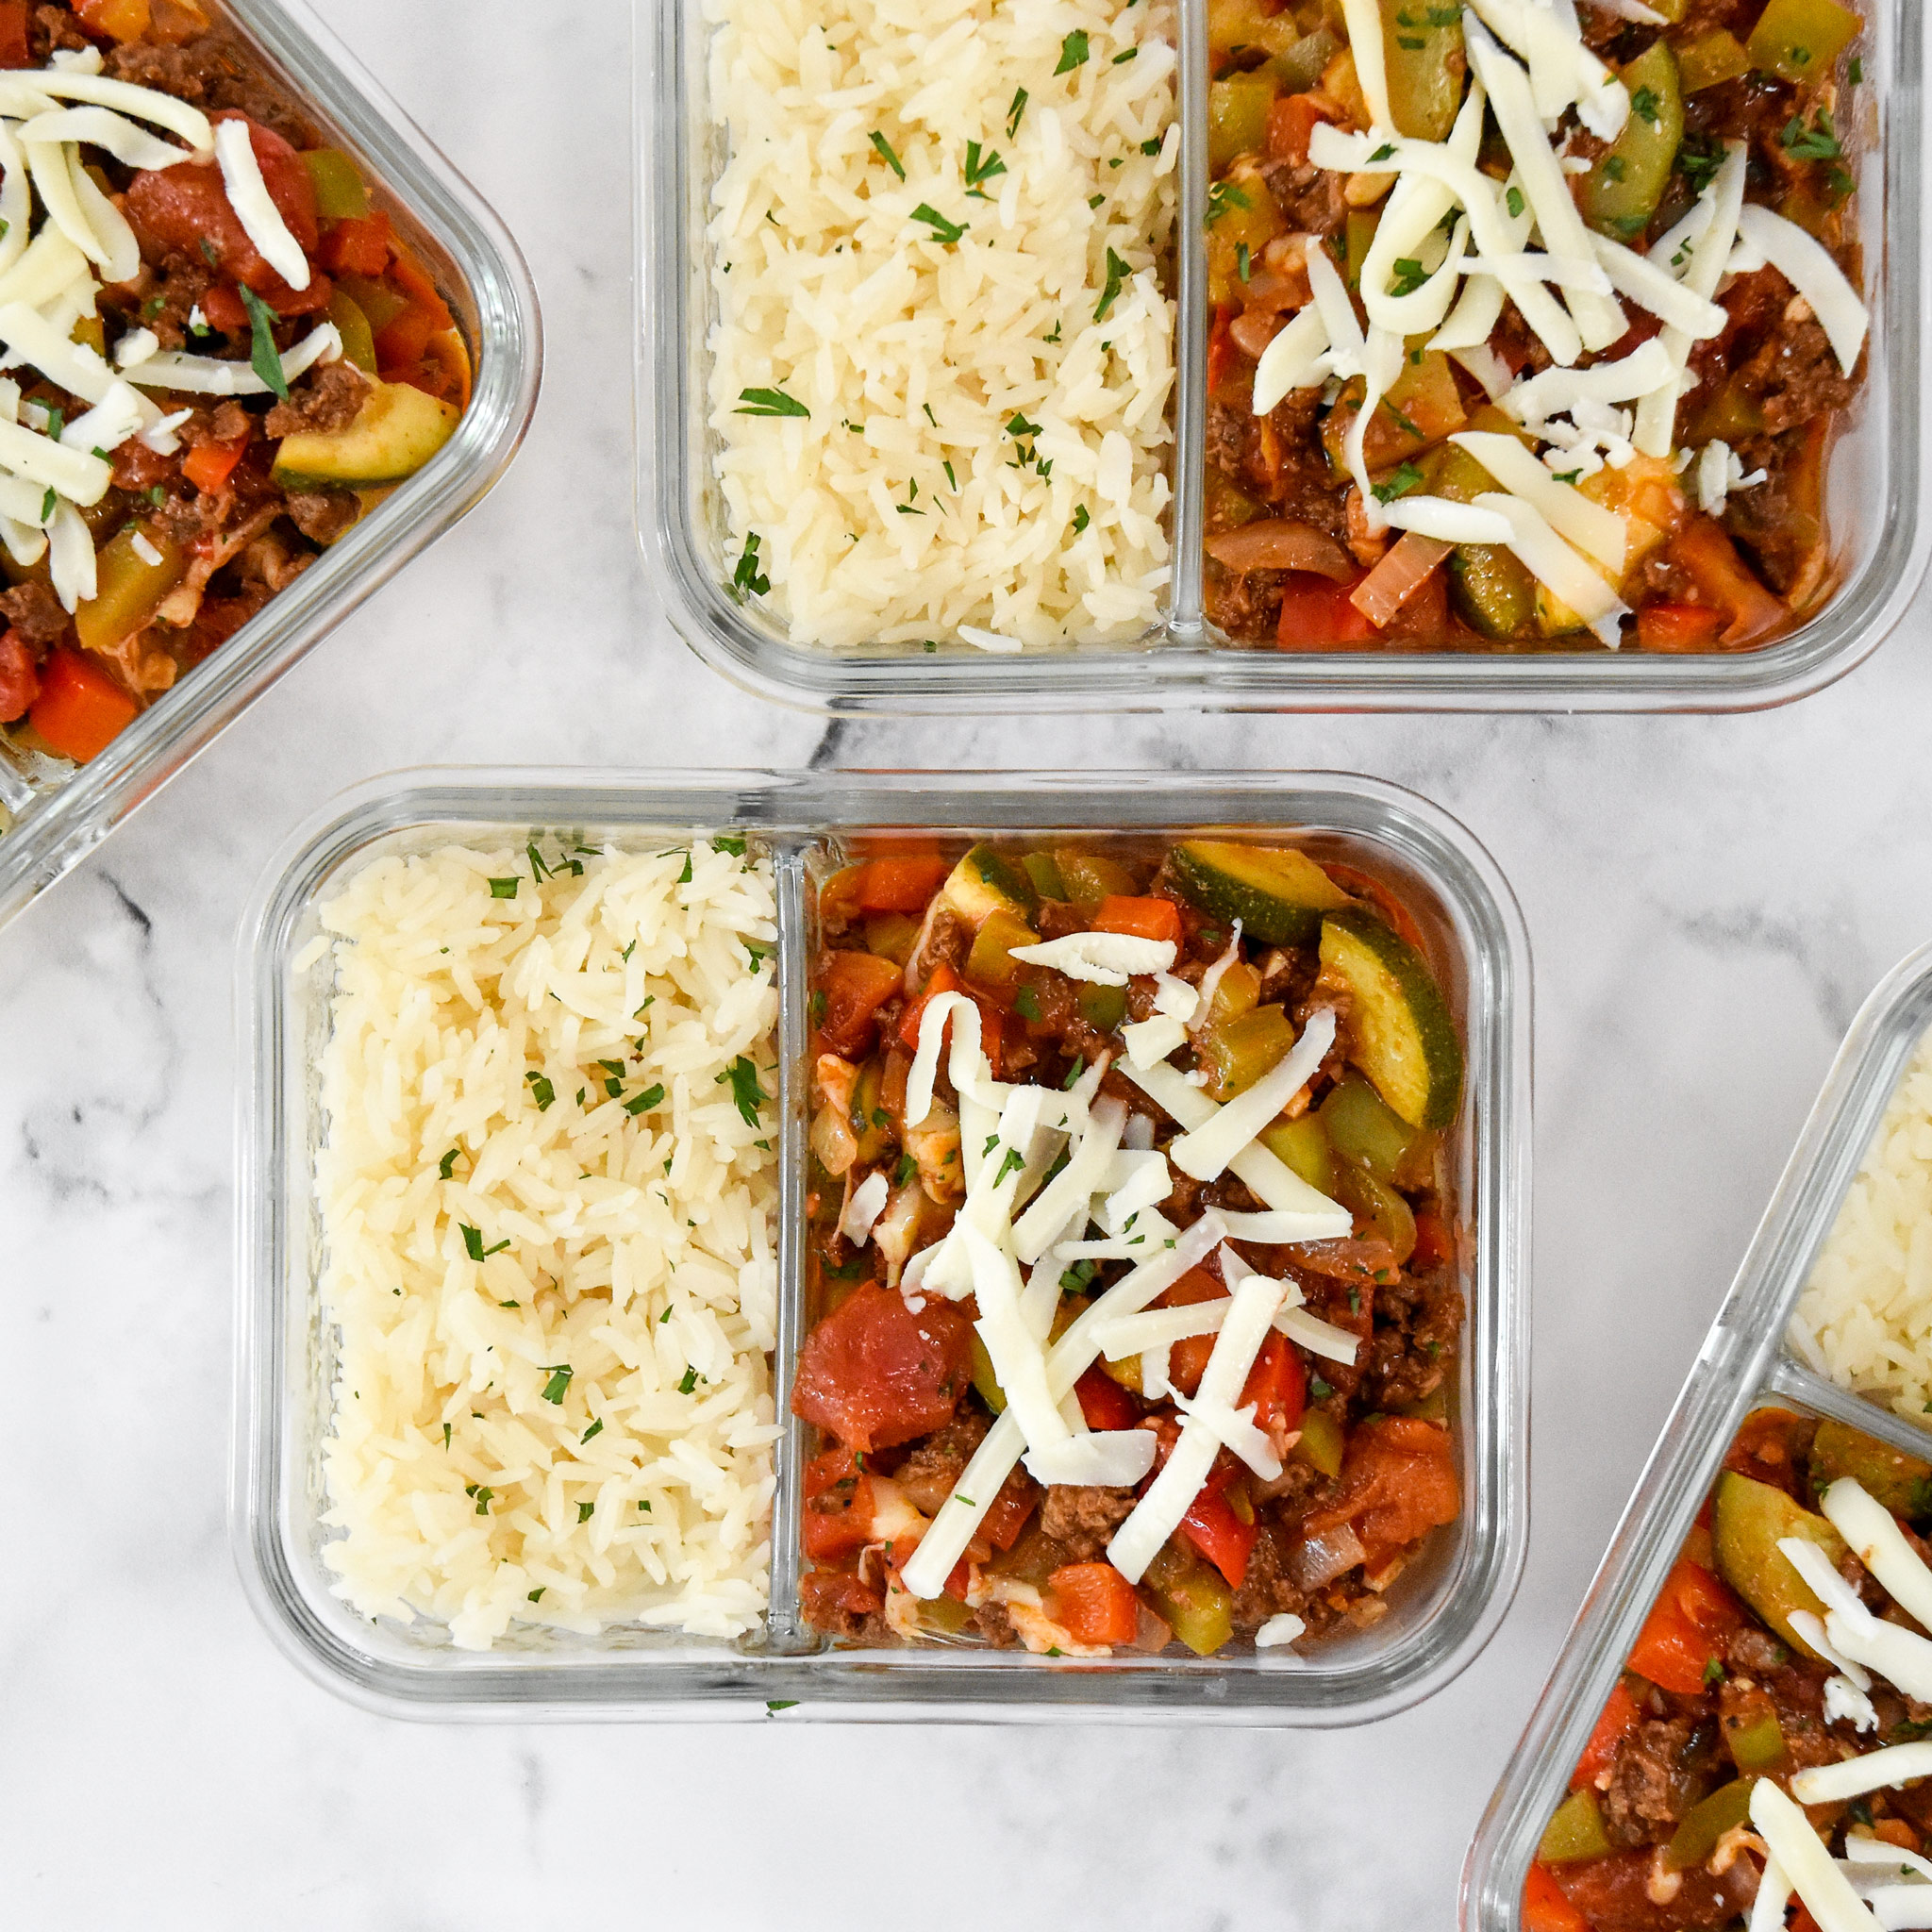 meal prep unstuffed pepper bowls in glass 2 compartment containers with cheese on top.